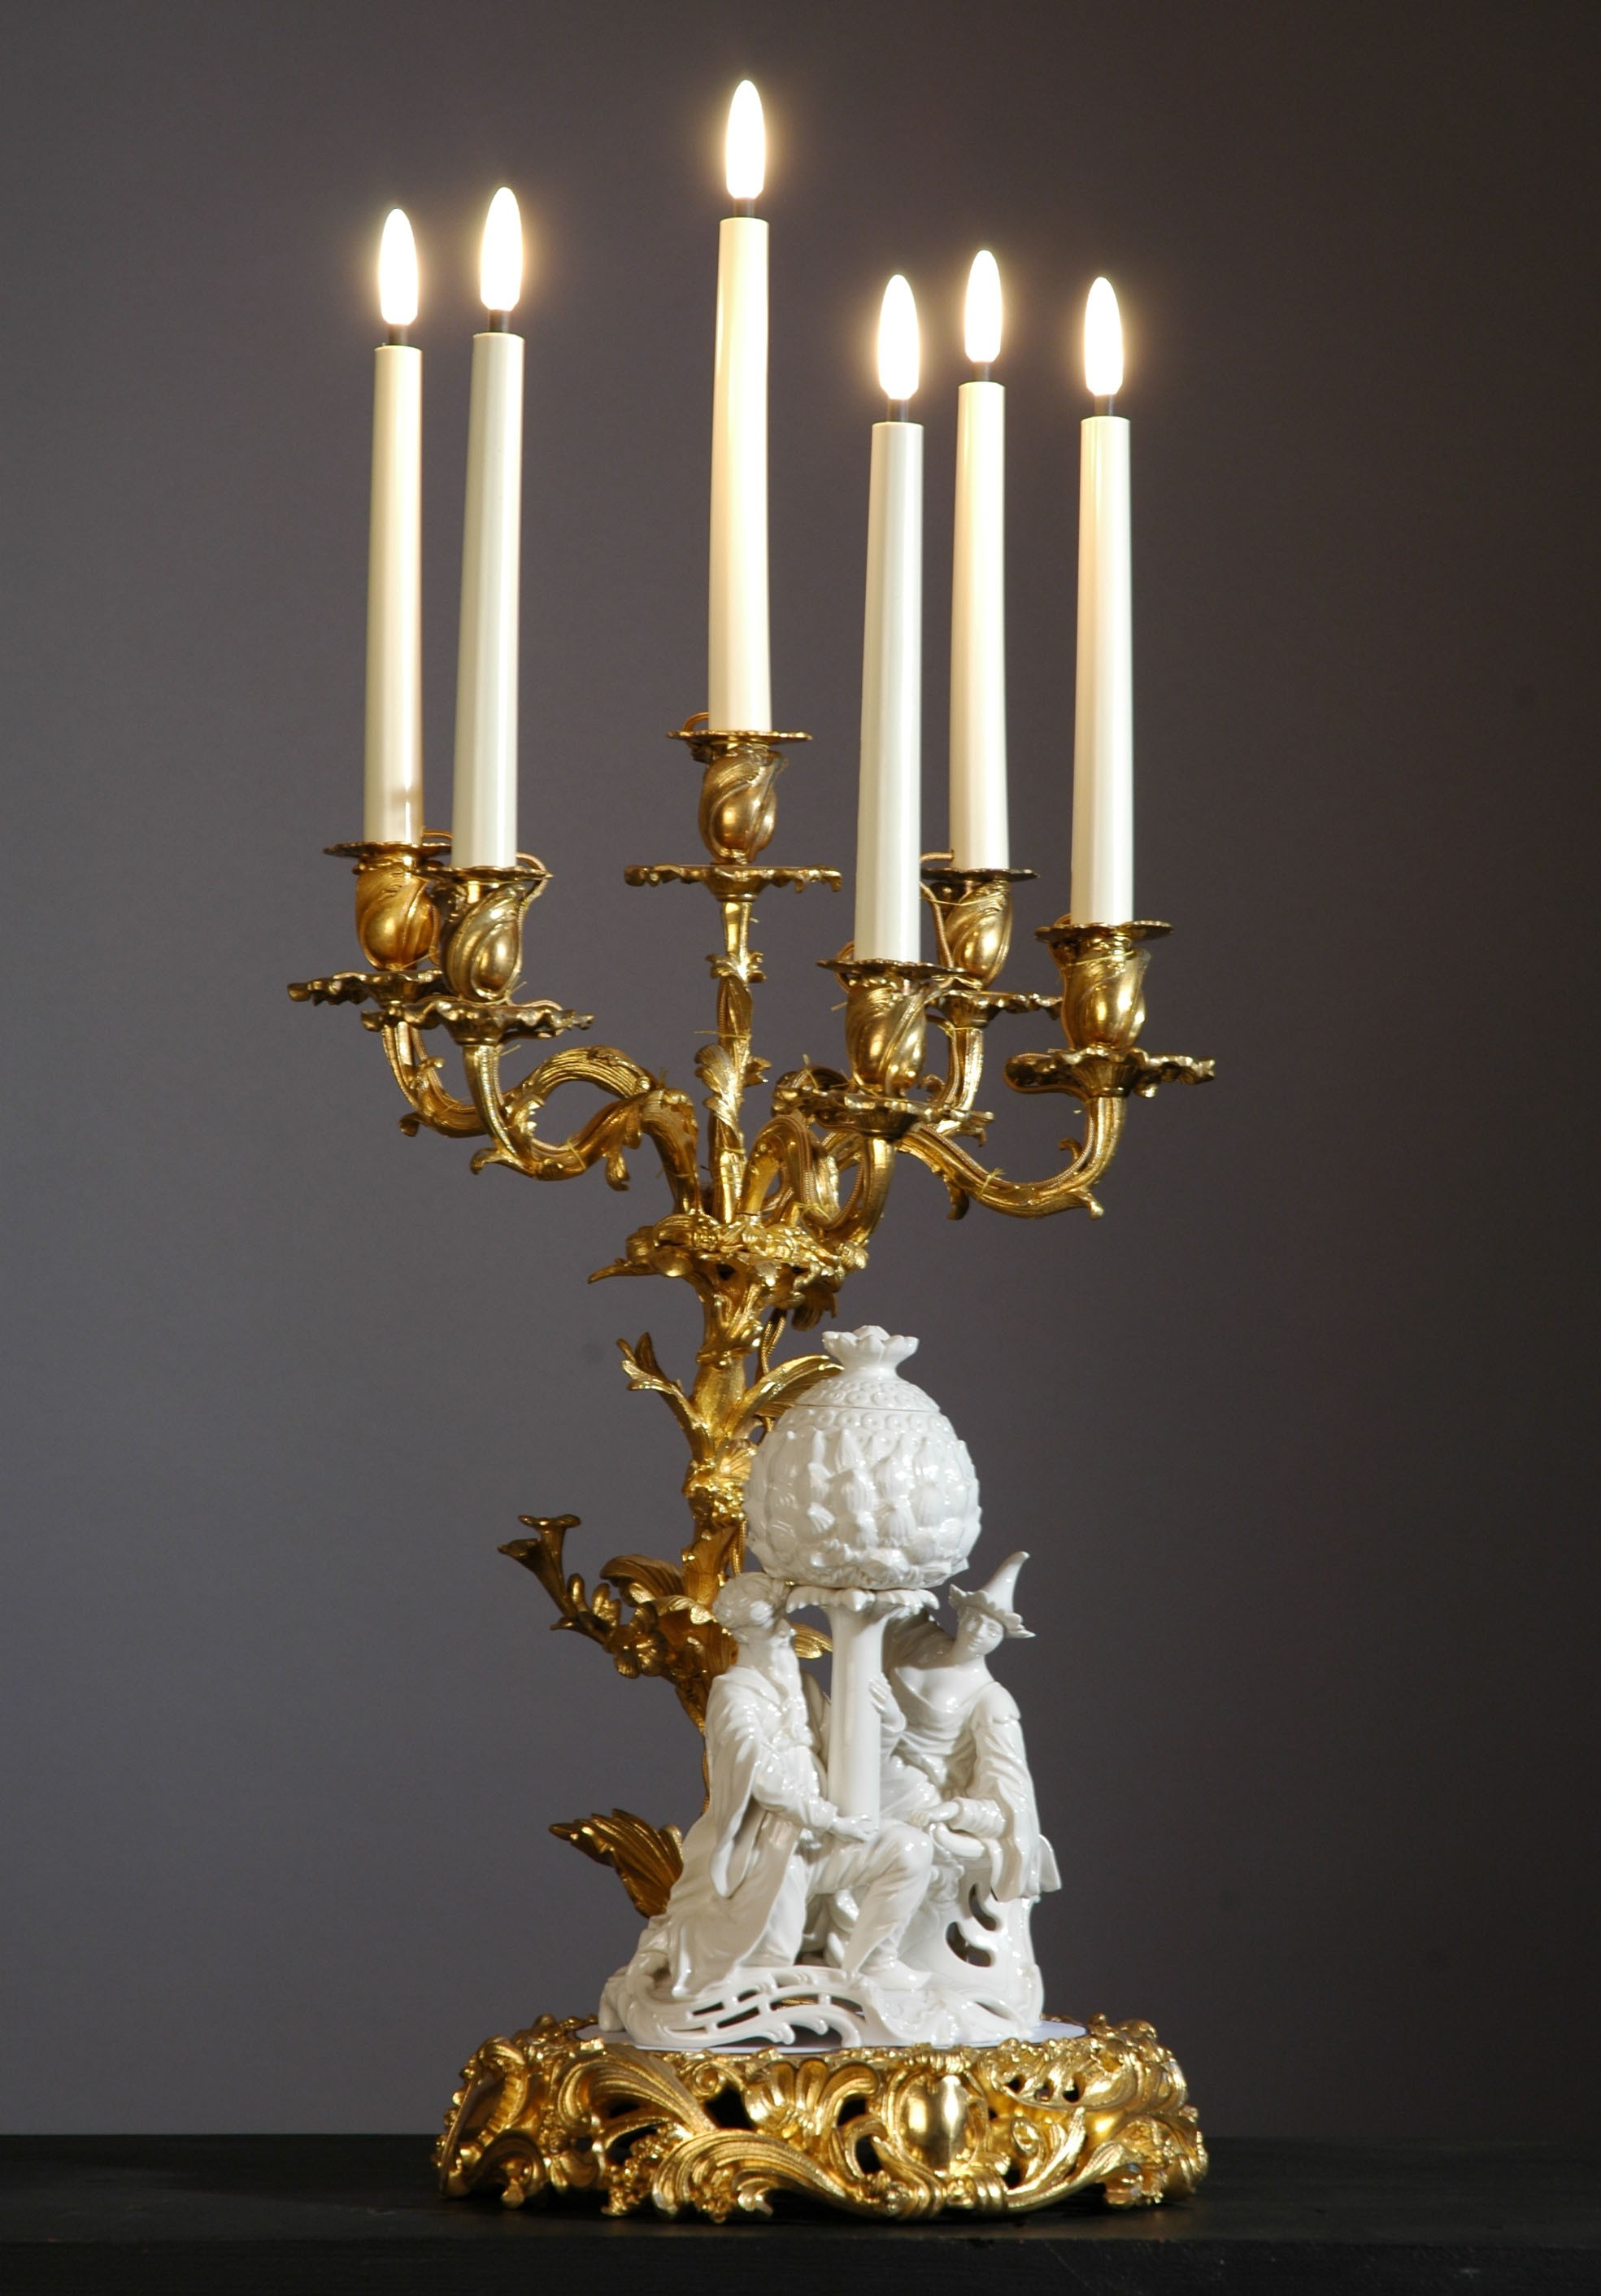 Candelabra with Chinese group porcelain